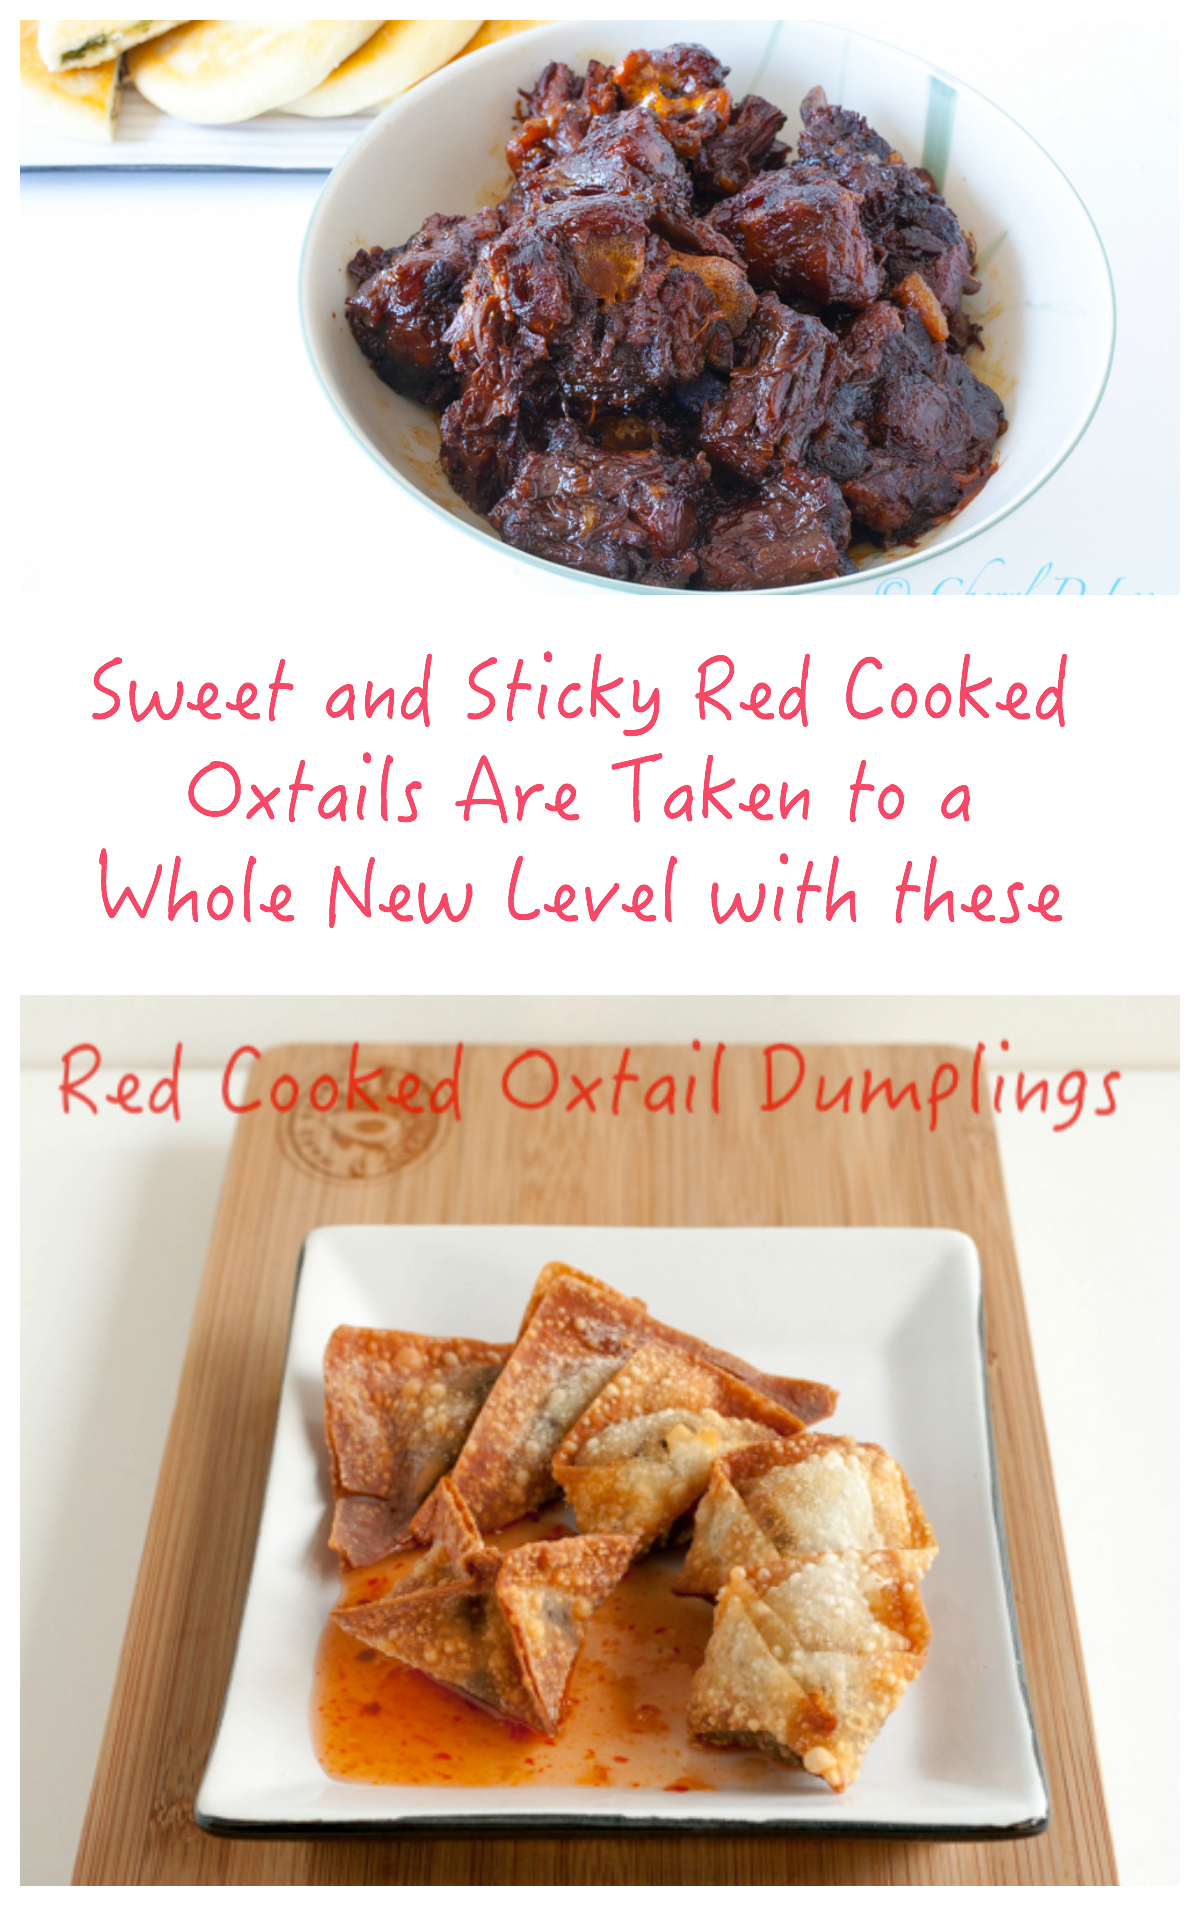 Red Cooked Oxtails Are Taken to a Whole New Level!